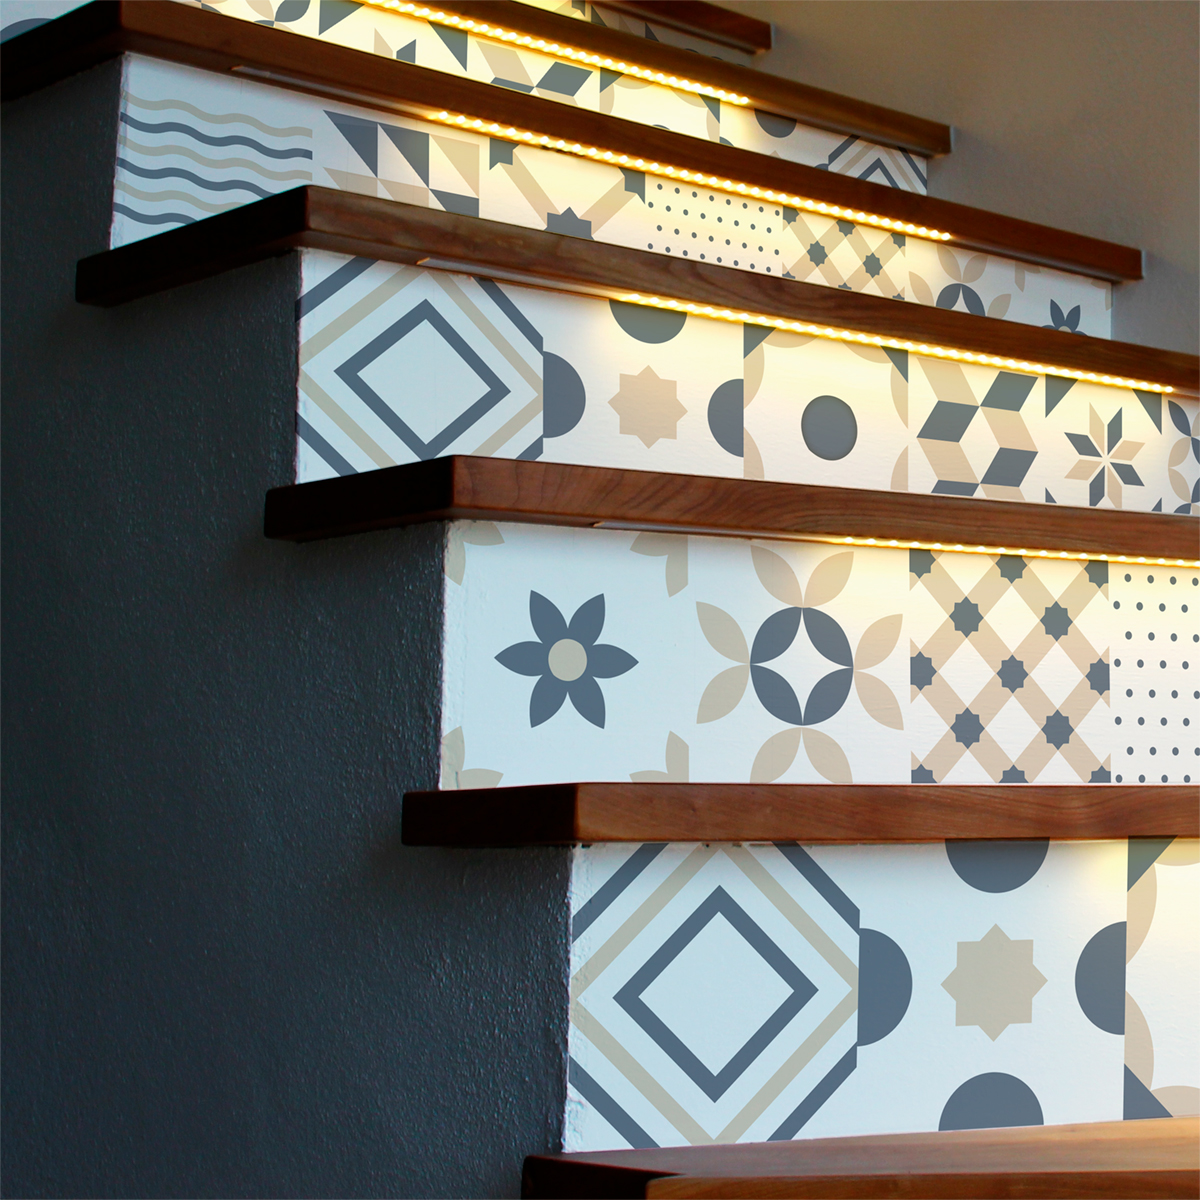 Stickers contremarche carrelages ornements design x 2 - Stickers marche escalier ...